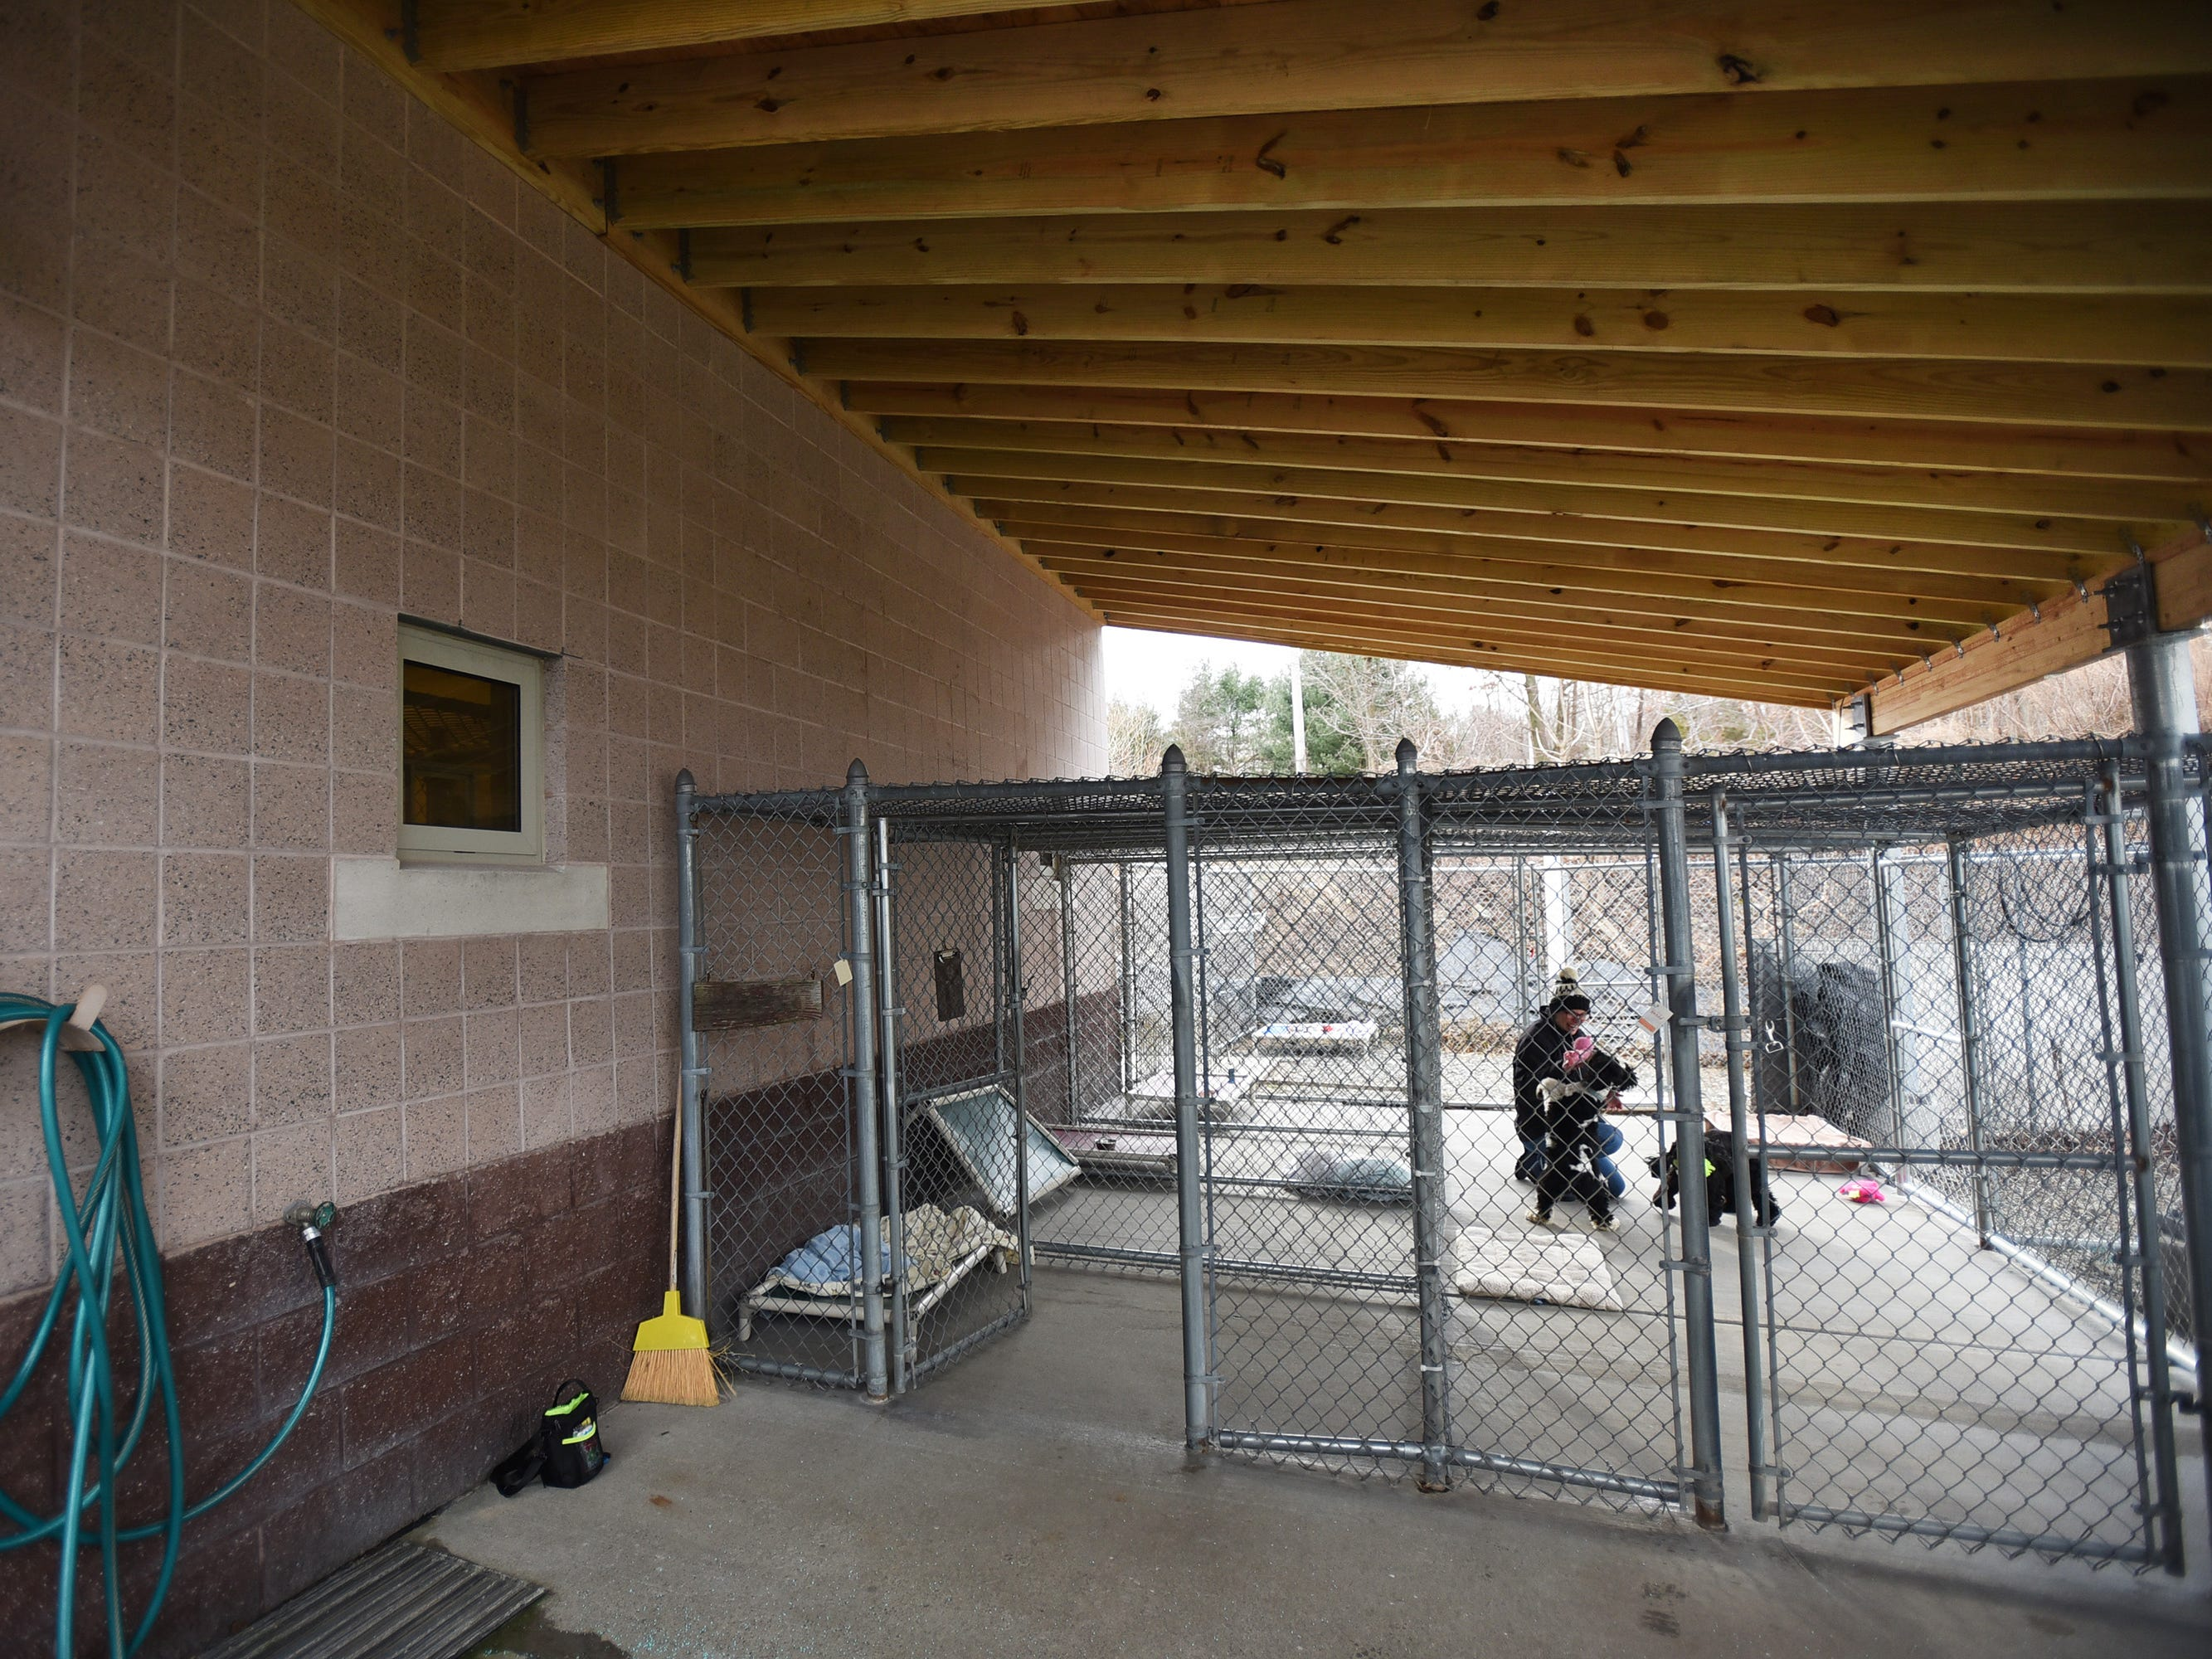 Senior Kennel Attendant Jeni Meehan, interacts with two adoptee dogs beneath a new roofed structure over the outdoor kennels, which was donated by Ridgewood Eagle Scout Frank Orlando, at Ramapo-Bergen Animal Refuge in Oakland on 01/10/19.